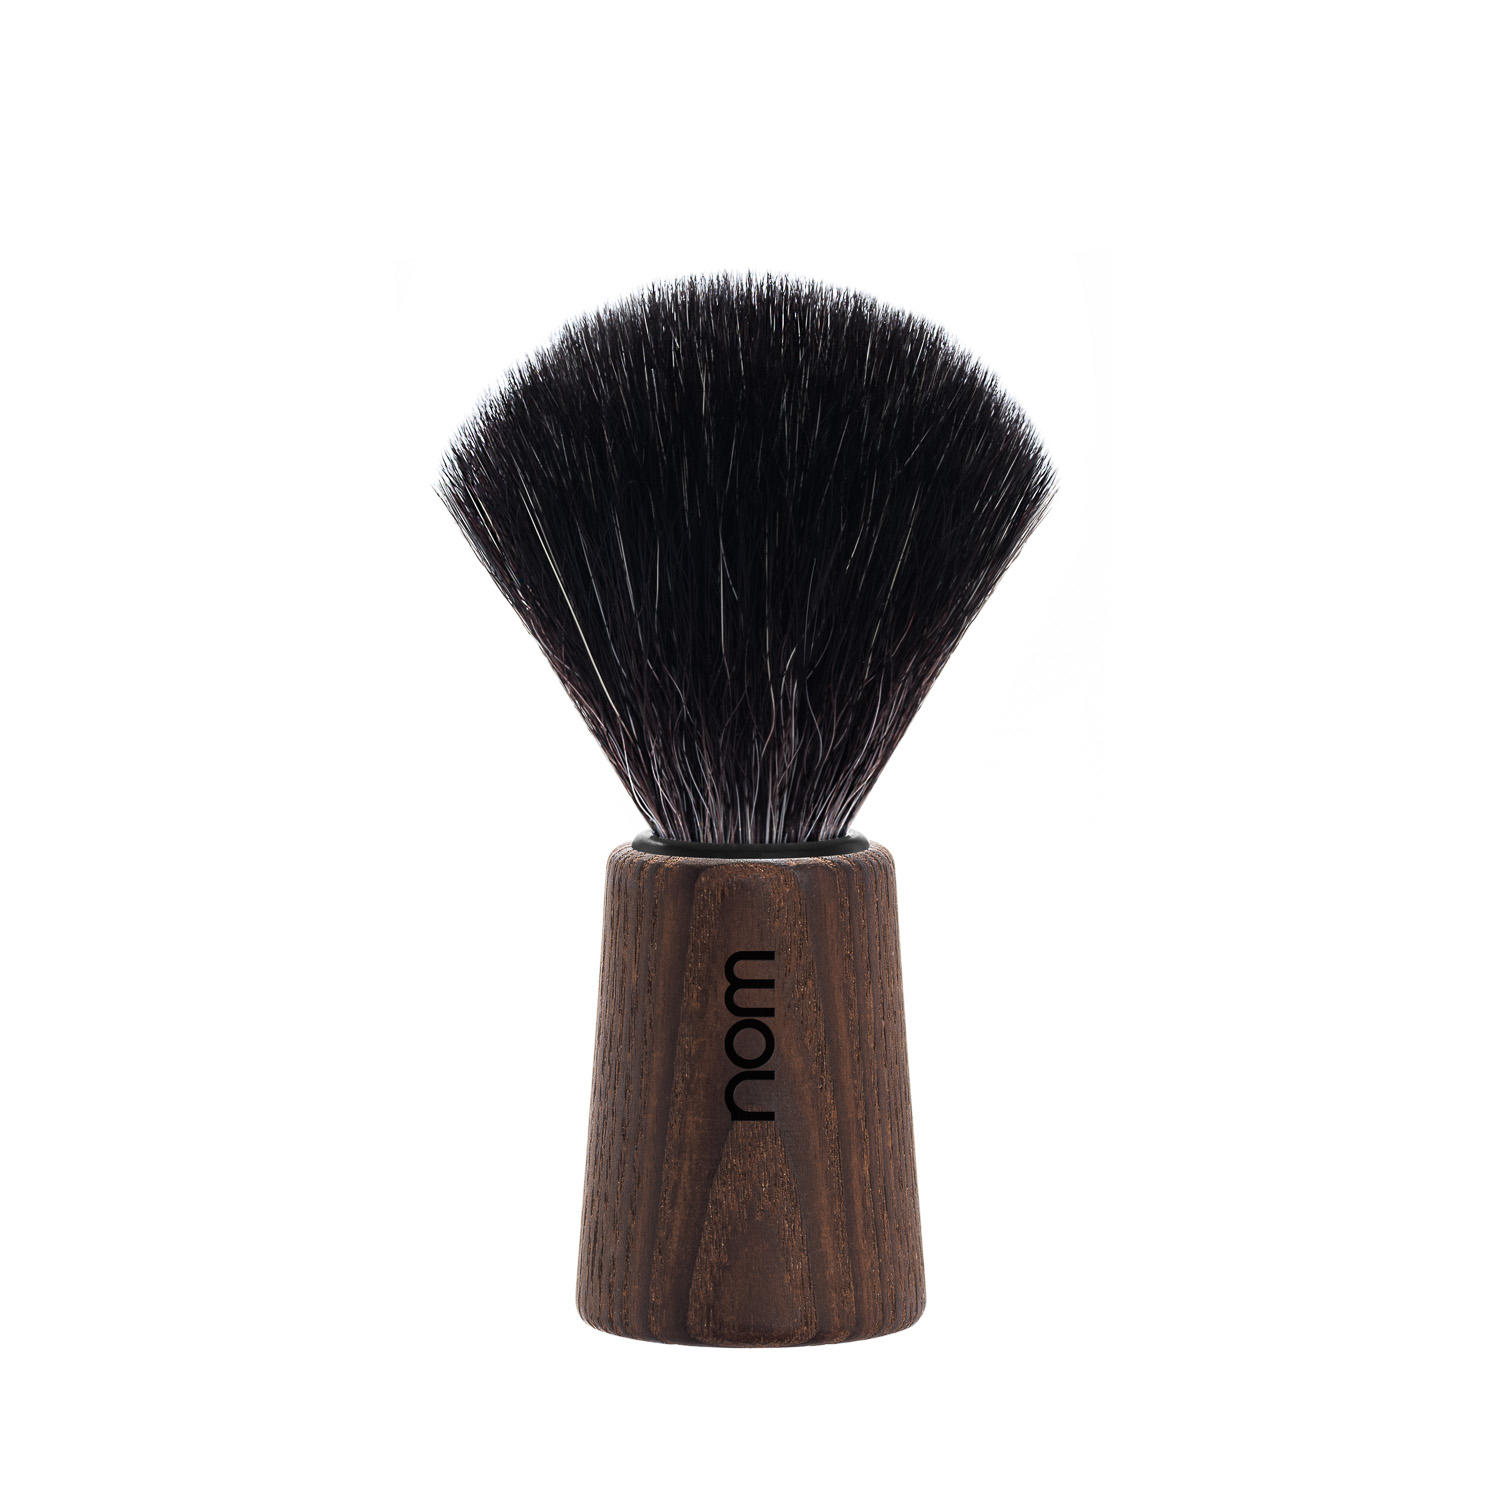 THEO21DA nom THEO, Dark Ash, Black Fibre, Shaving Brush